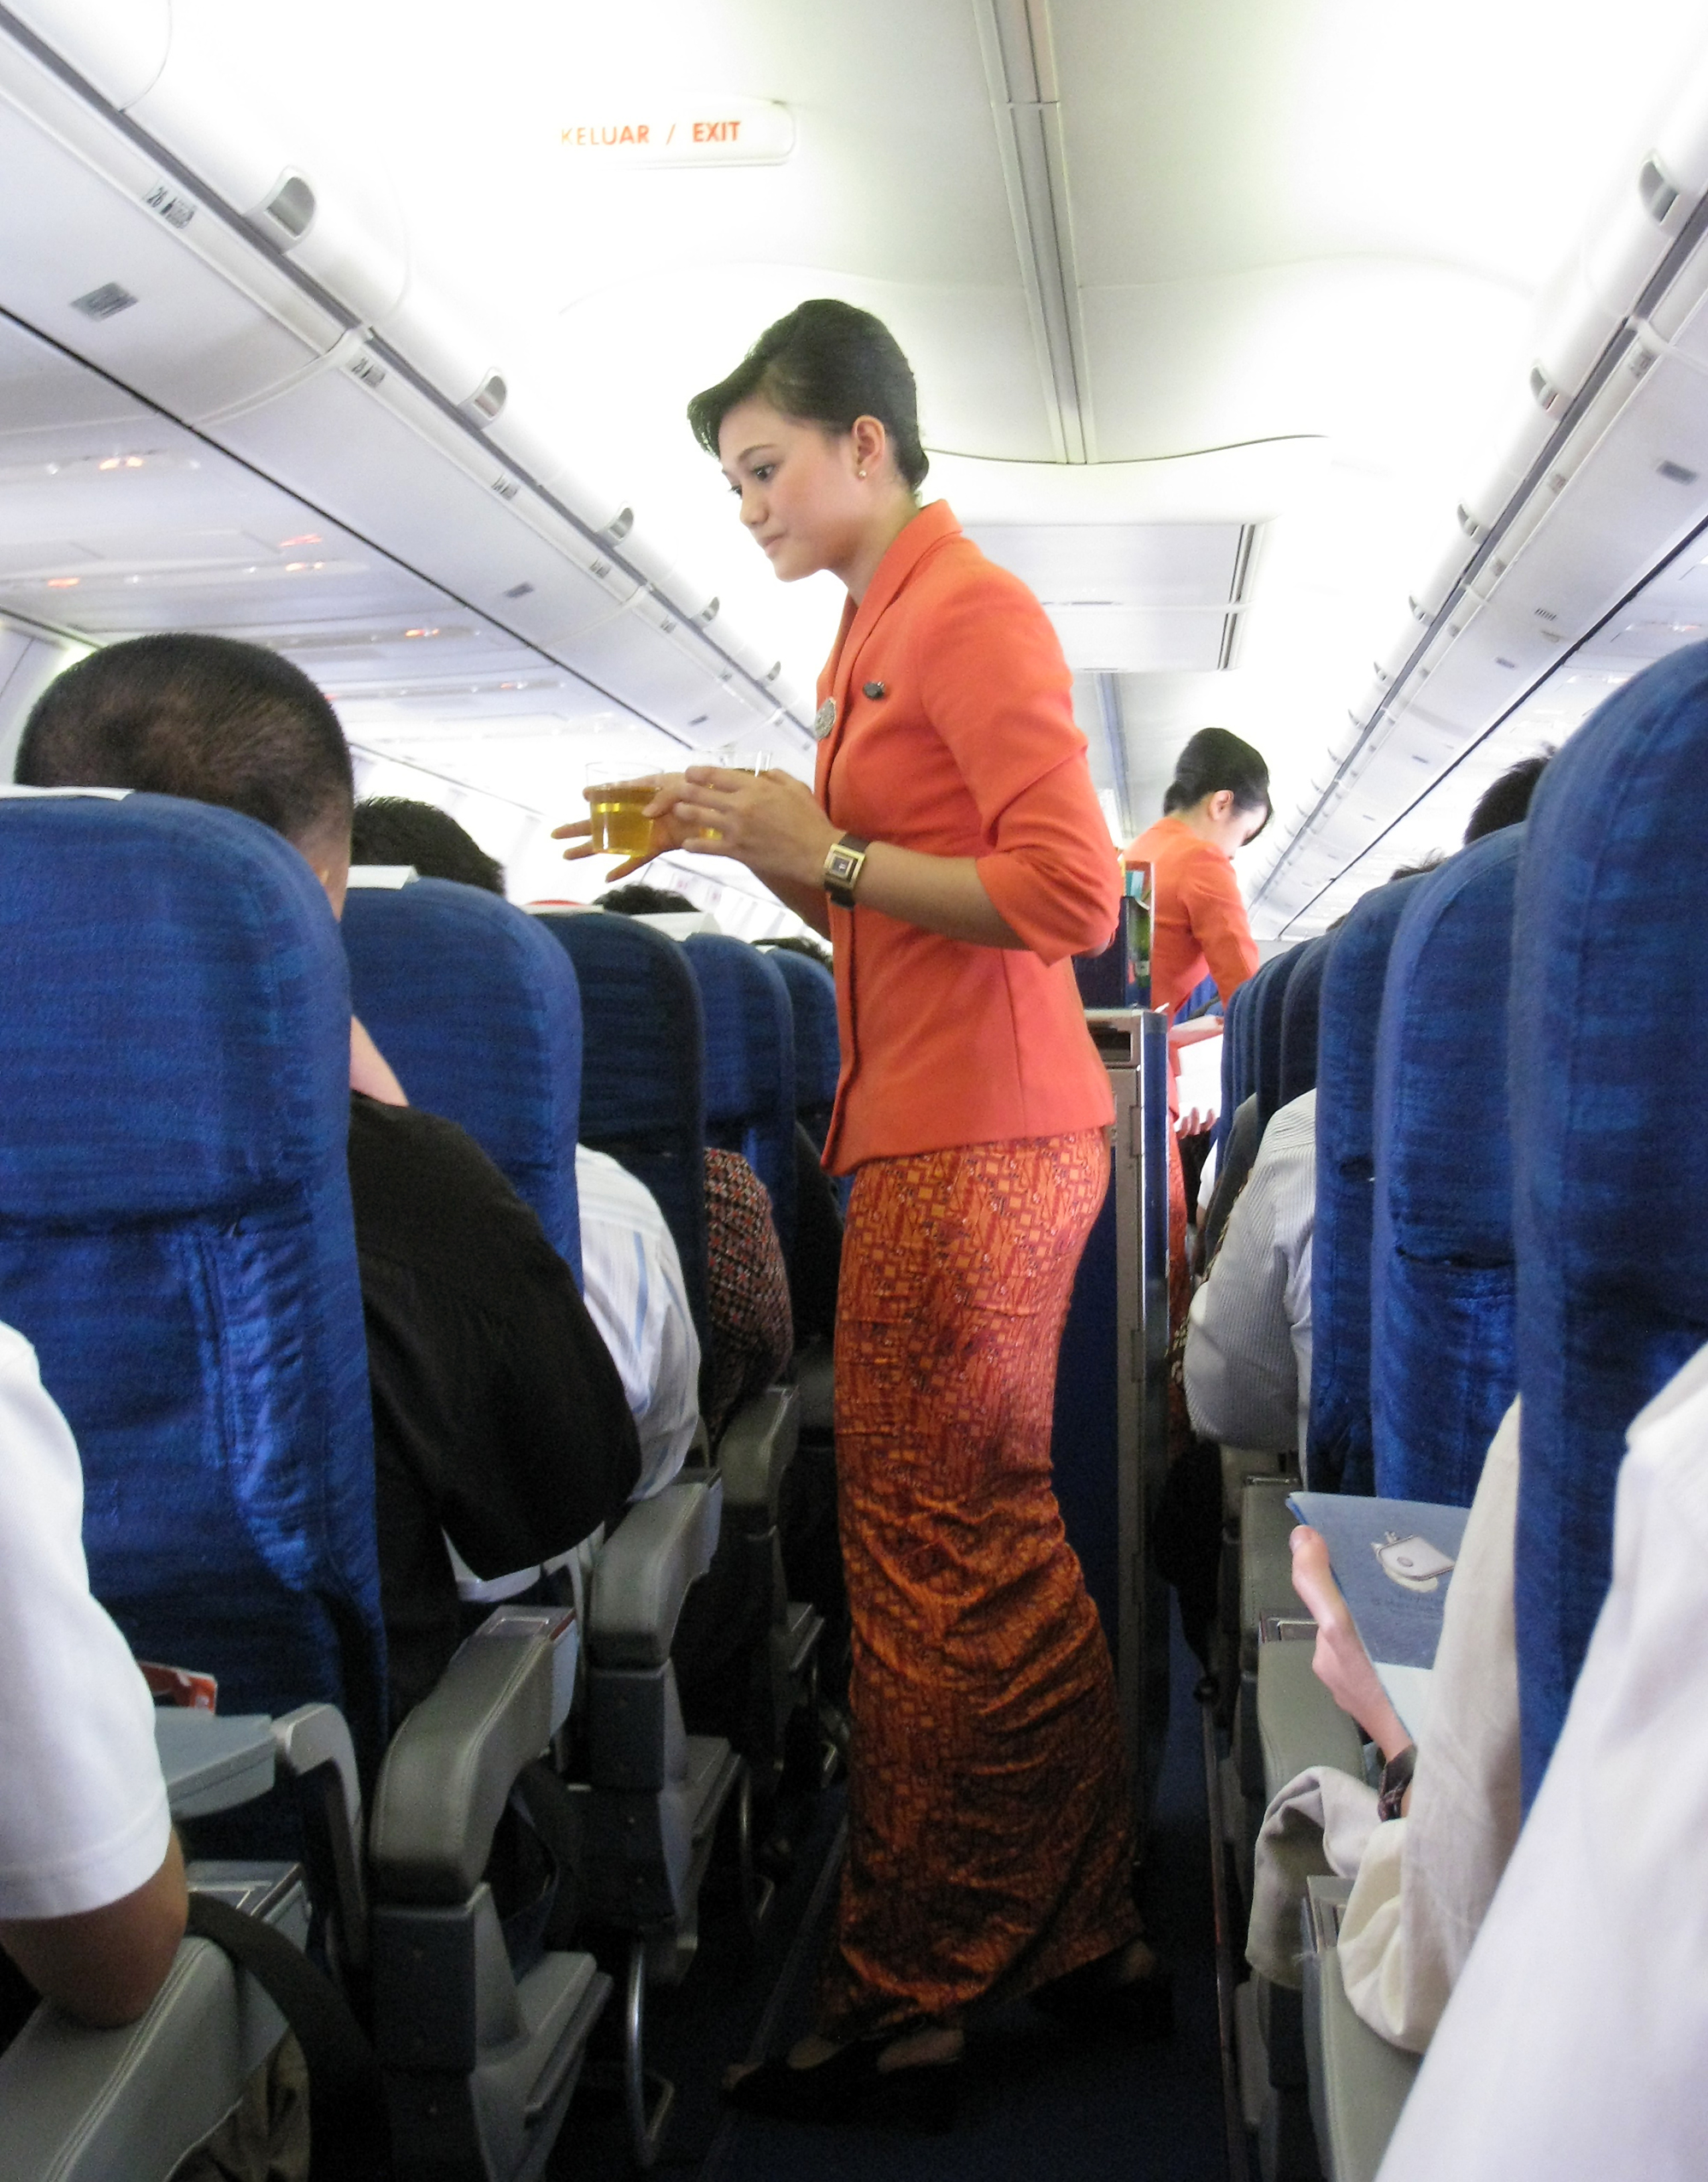 Description Garuda Indonesia Flight Attendants Serving Refreshment.jpg